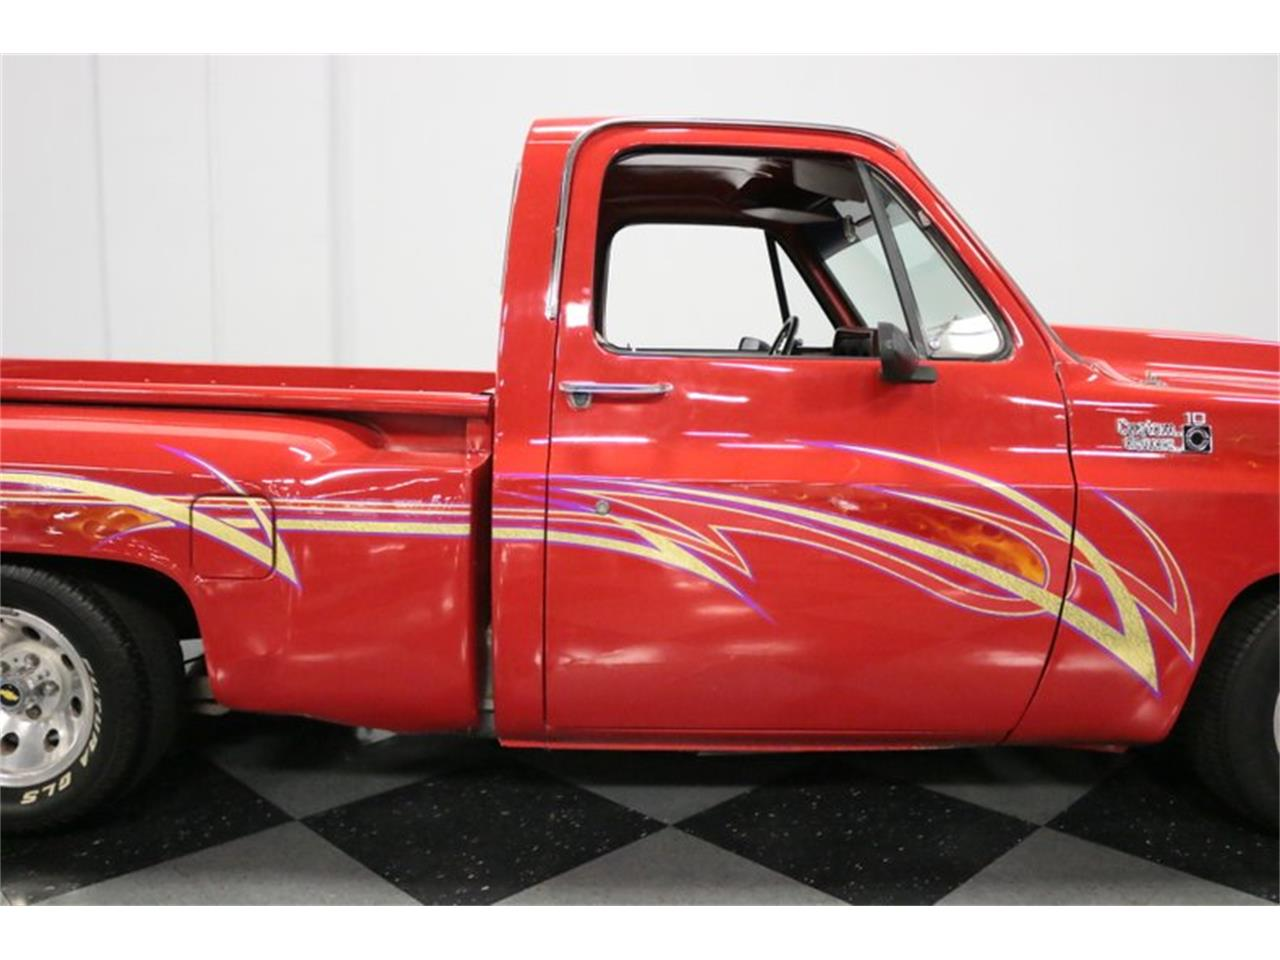 Large Picture of '79 Chevrolet C10 located in Texas Offered by Streetside Classics - Dallas / Fort Worth - QAW7